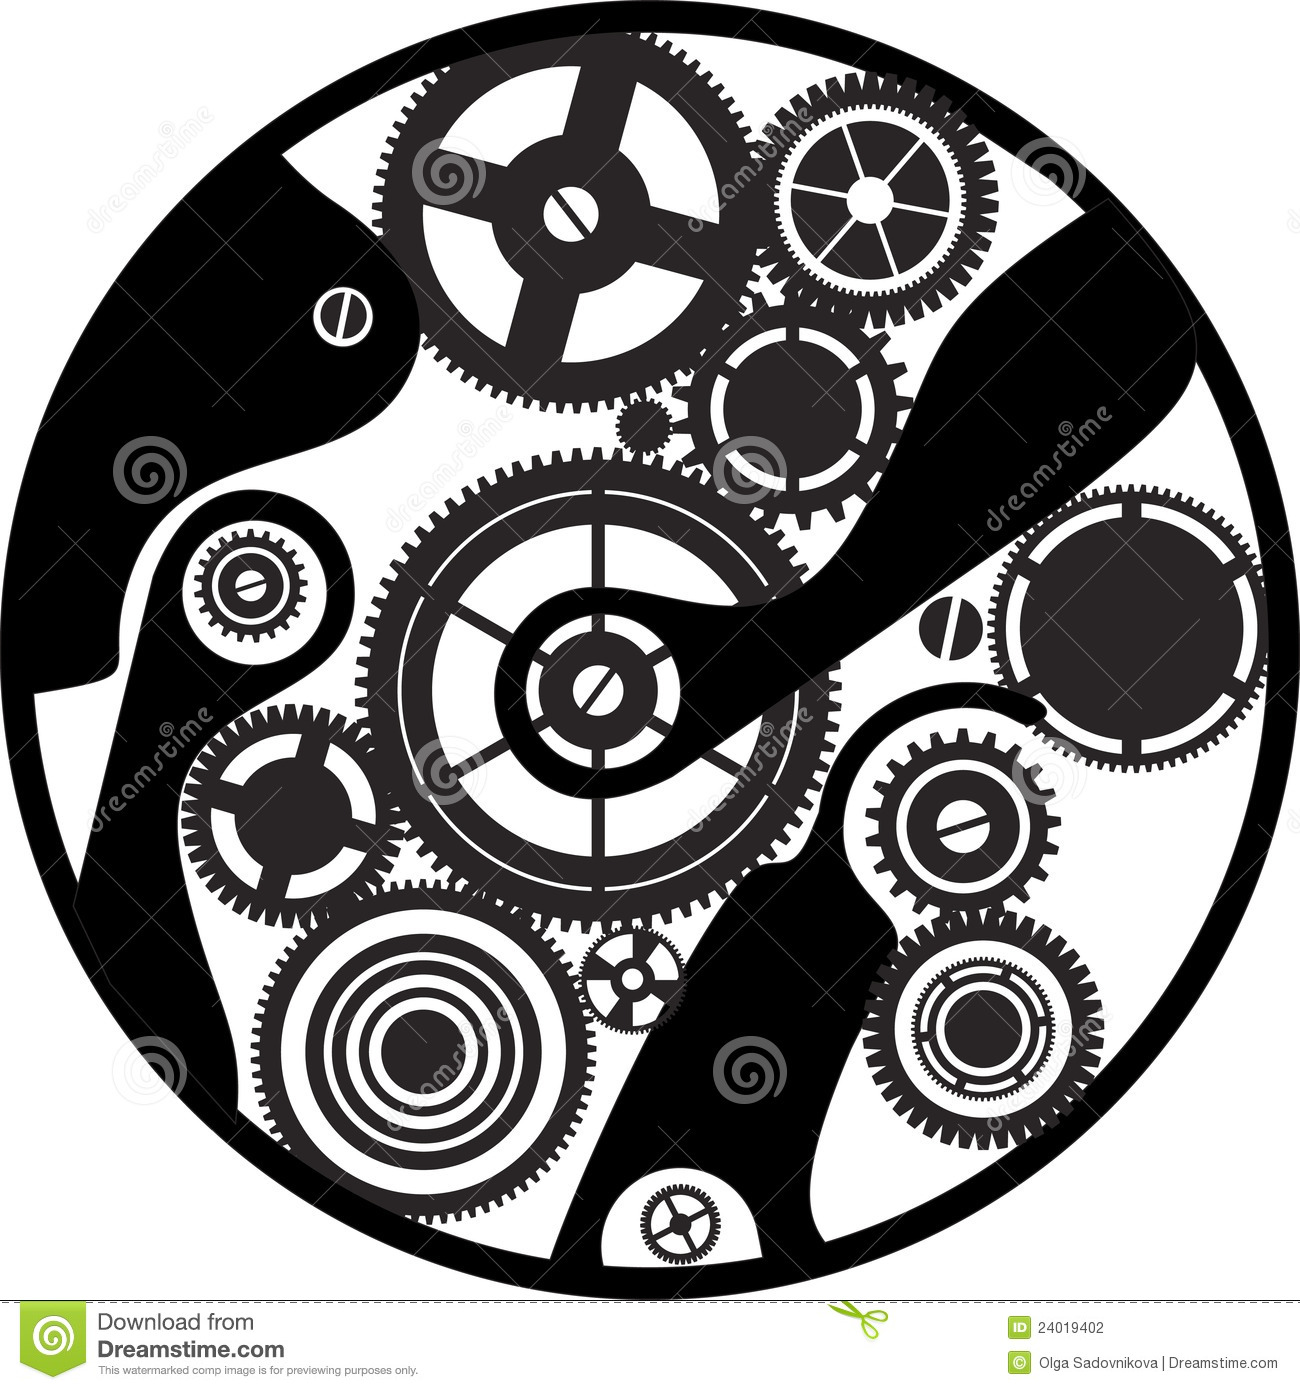 Silhouette Clockwork Stock Photography - Image: 24019402